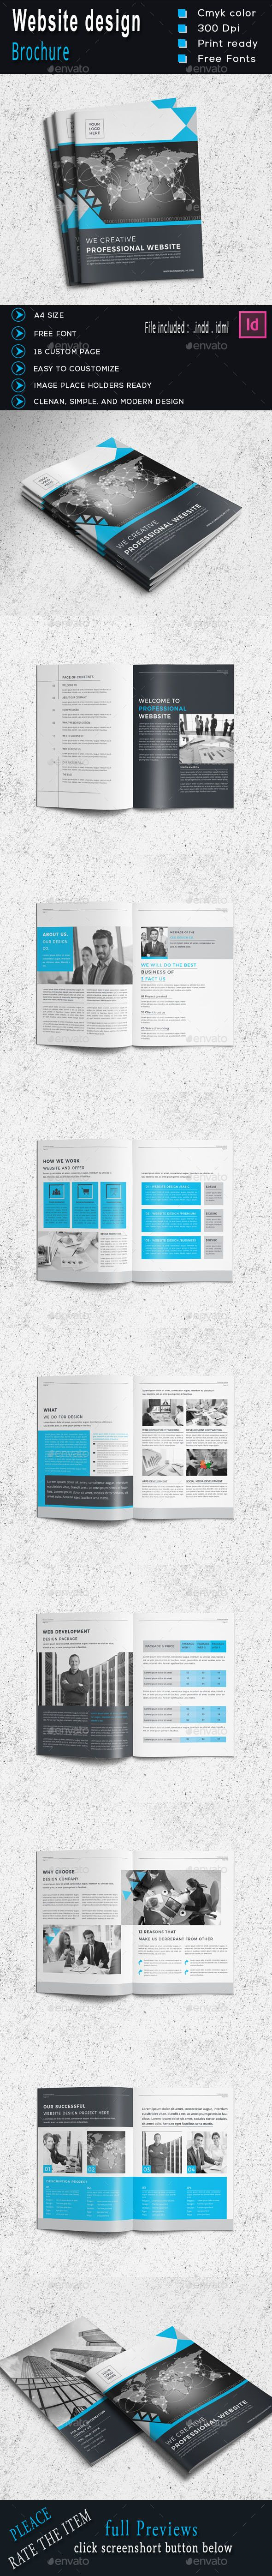 Website Design Brochure Template Vol.2